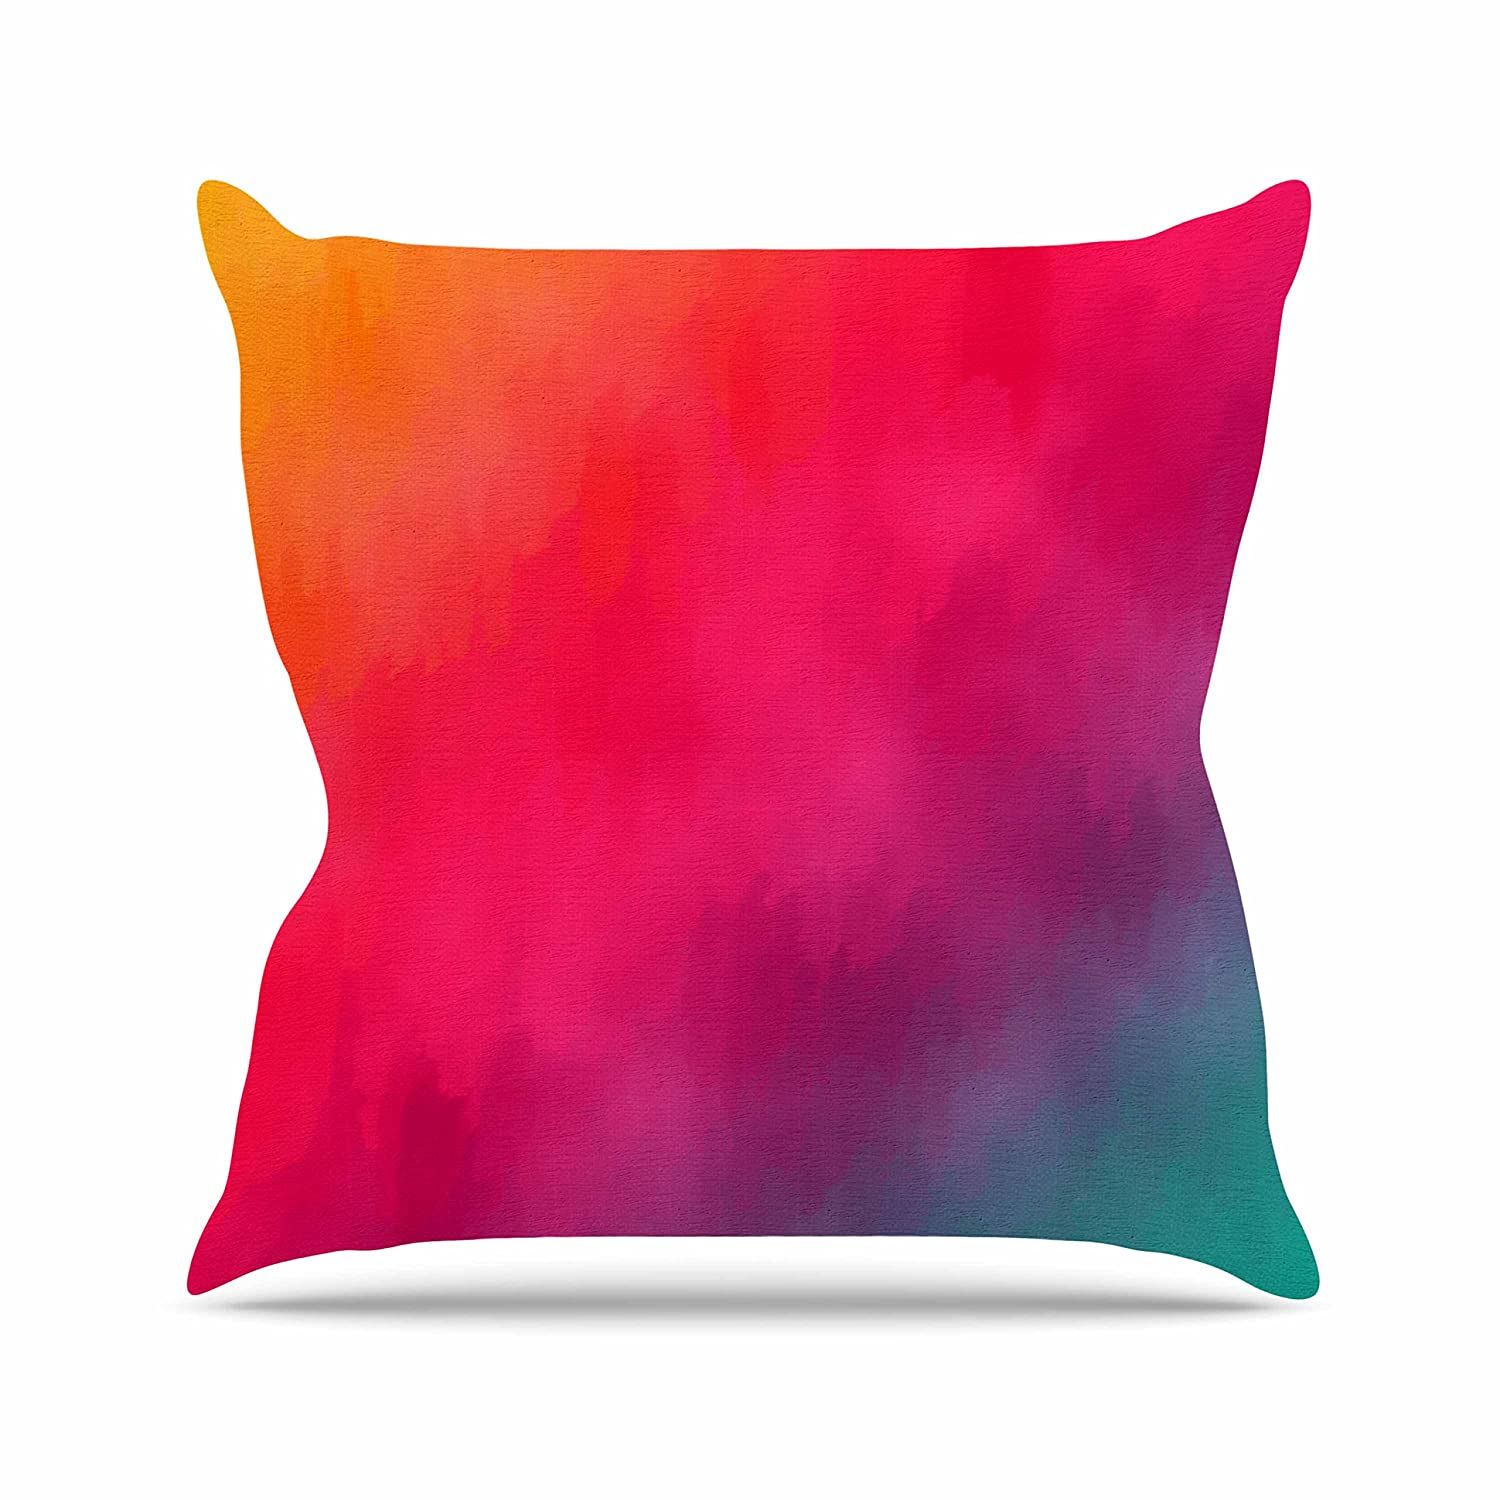 Kess InHouse Fotios Pavlopoulos Rainbow Loon Rainbow Abstract Throw Pillow 26 by 26